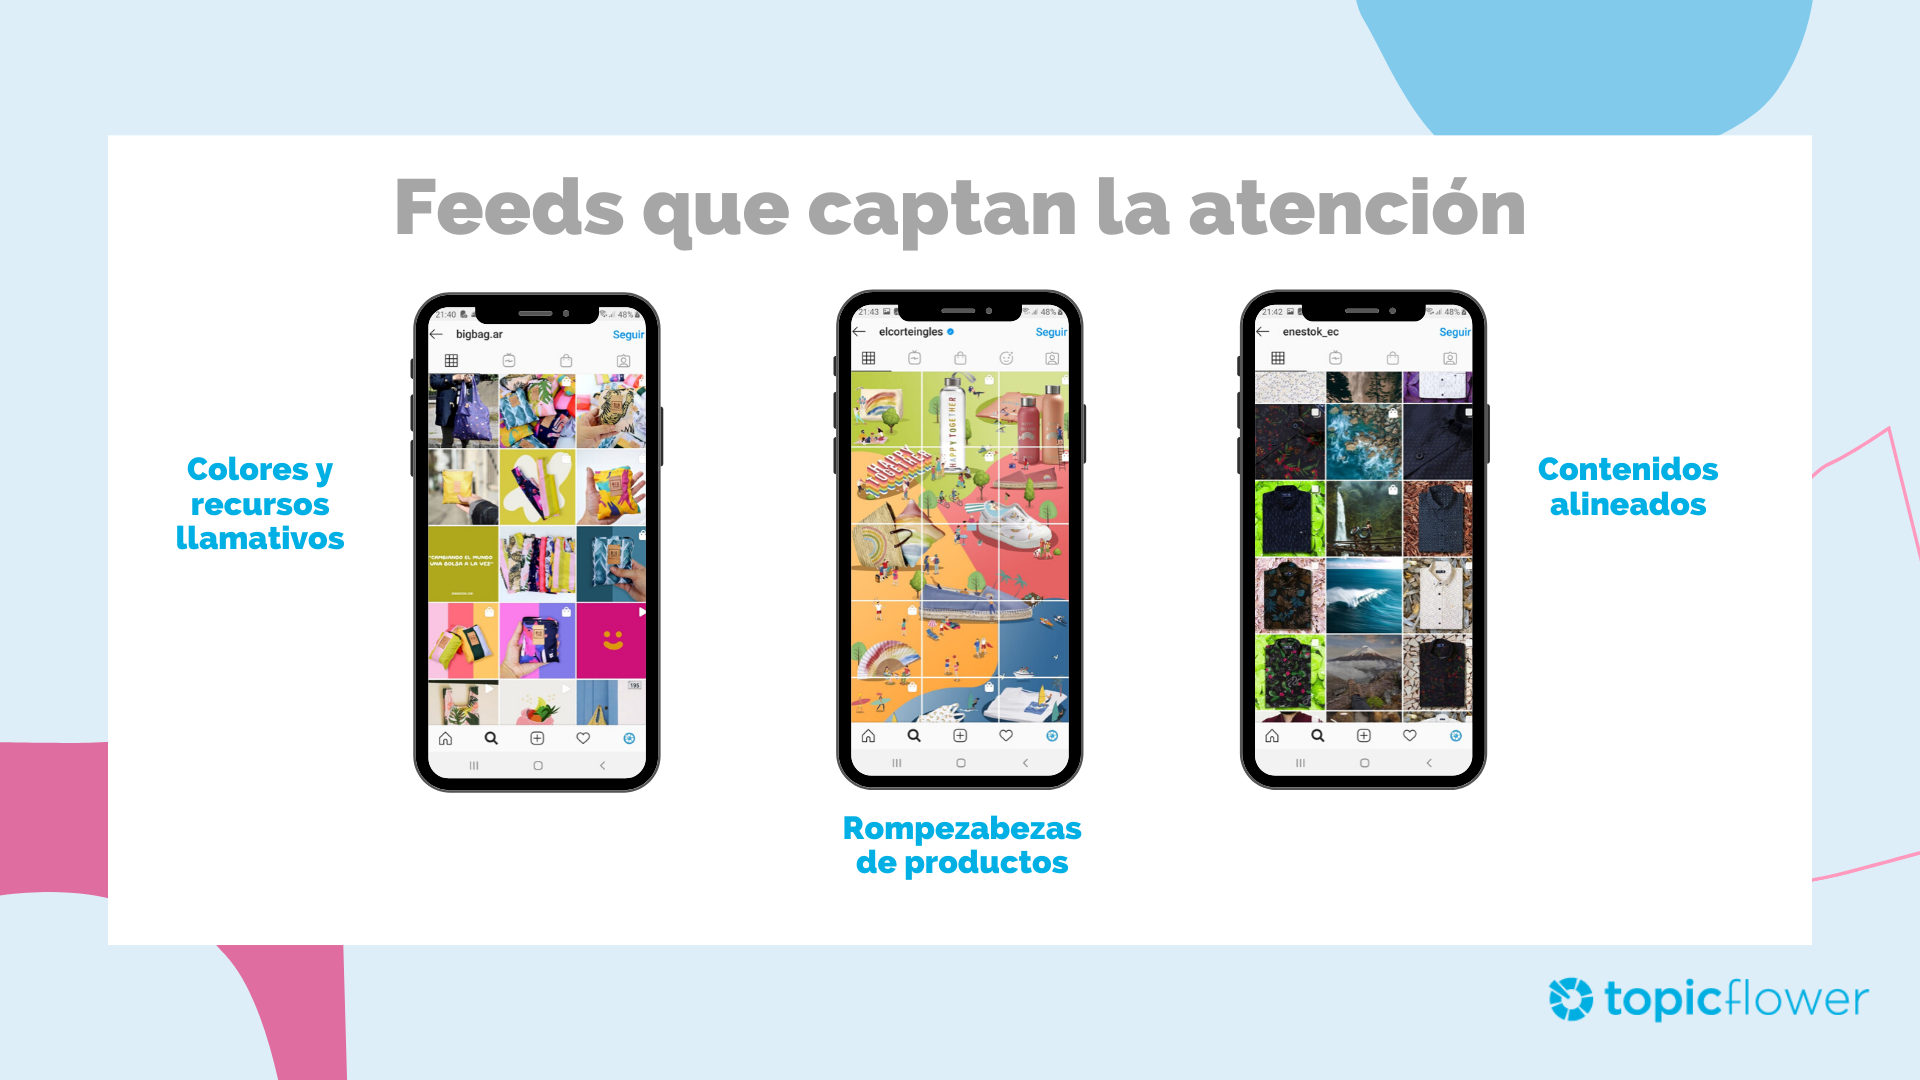 Instagram Business: Feeds que captan la atención